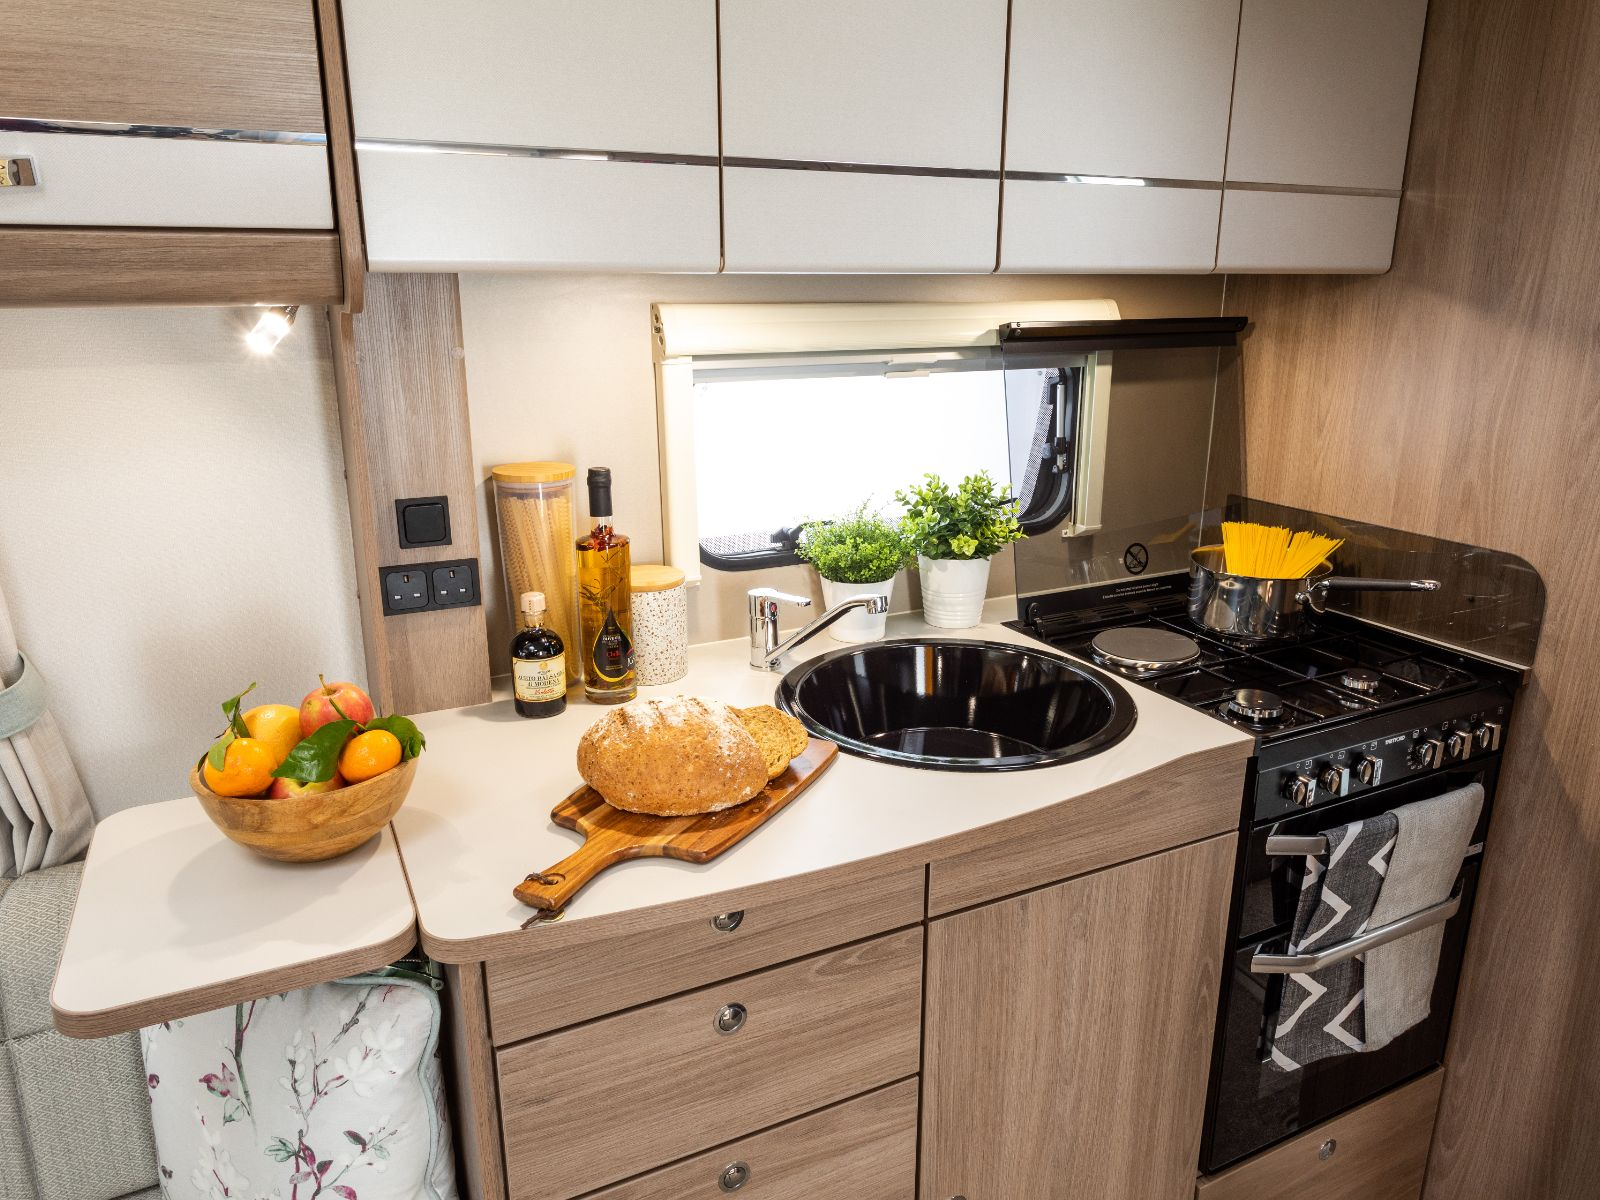 Kitchen layout with overhead storage, sink and oven with bowl of oranges and bread resting on counter'